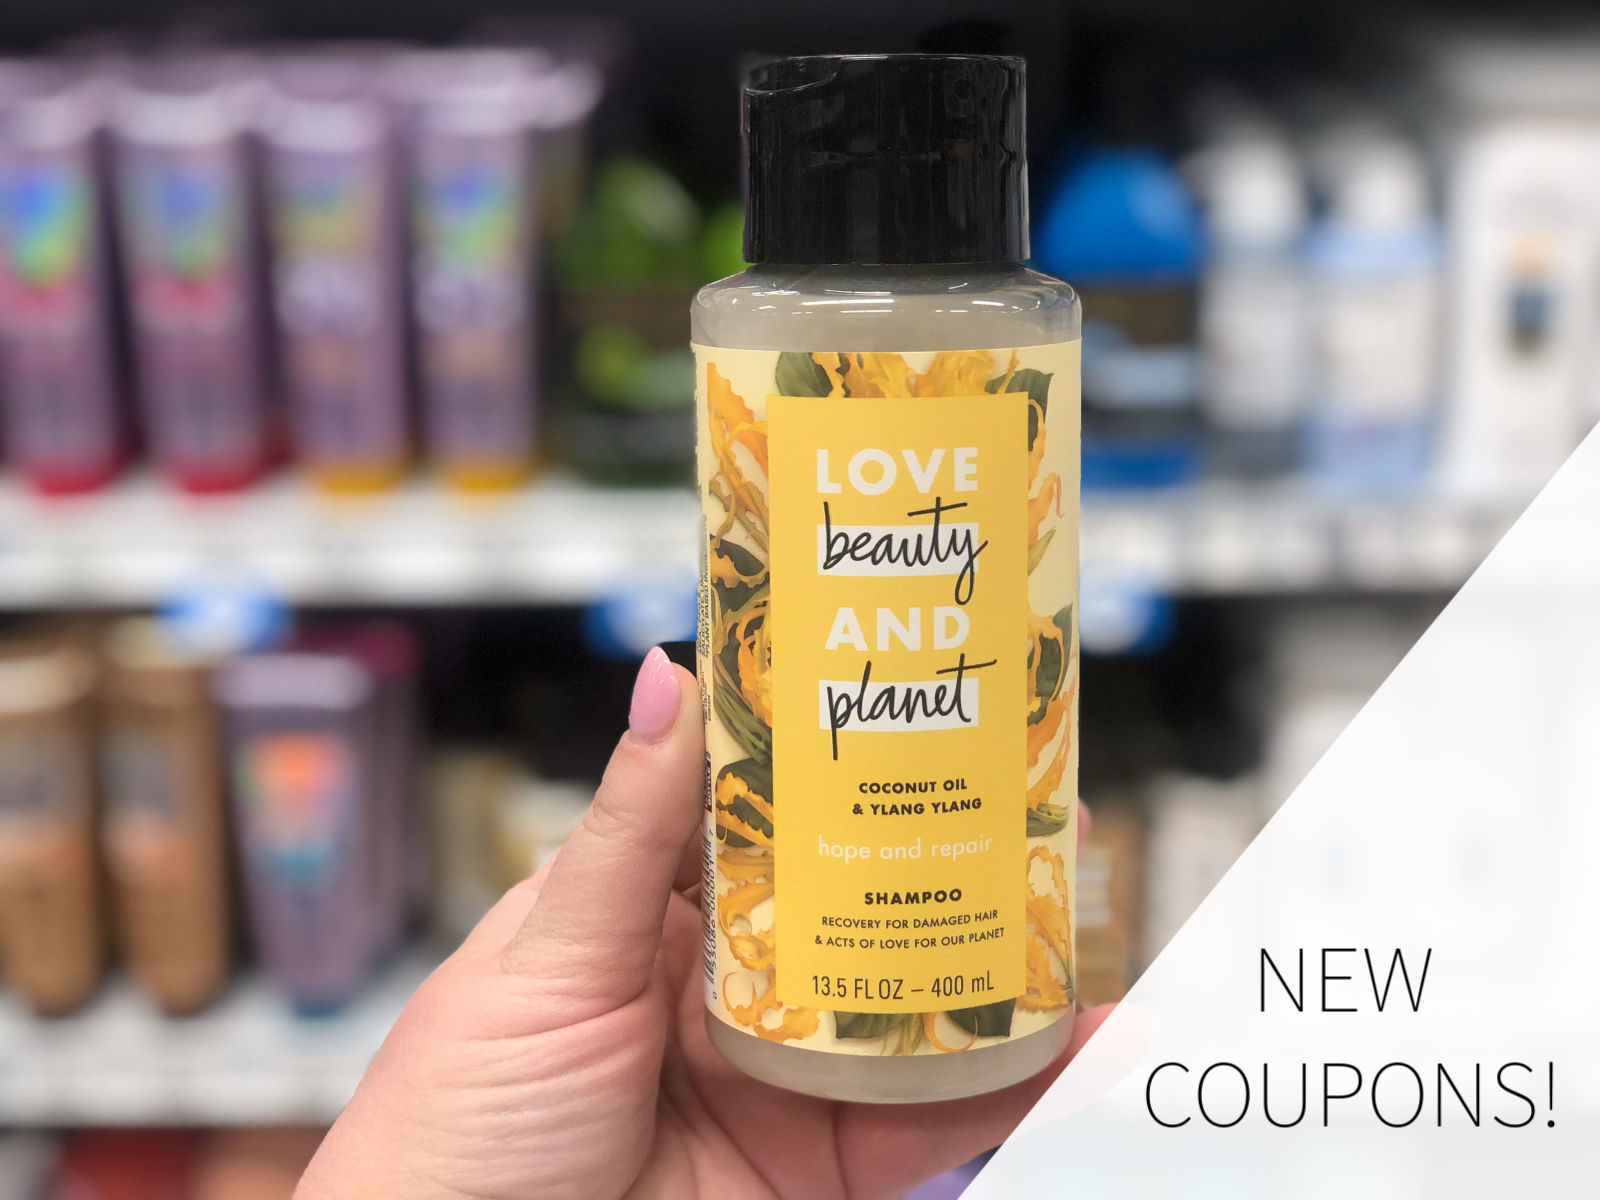 Love Beauty & Planet Products Only $3.49 At Publix - Today Only on I Heart Publix